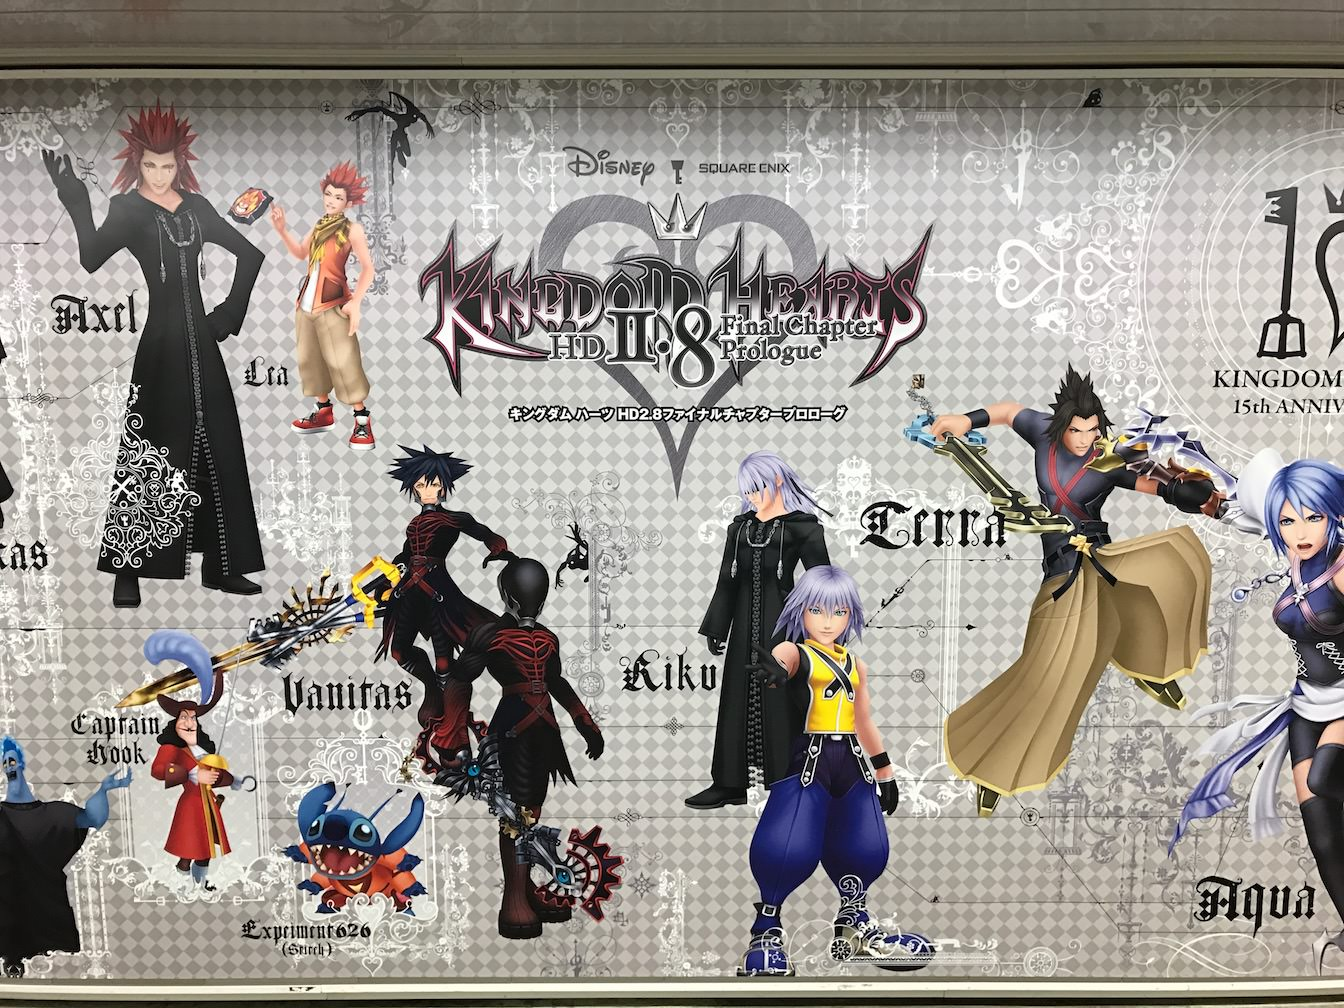 Kingdomhearts 15th anniversary exhibition at shinjuku 10